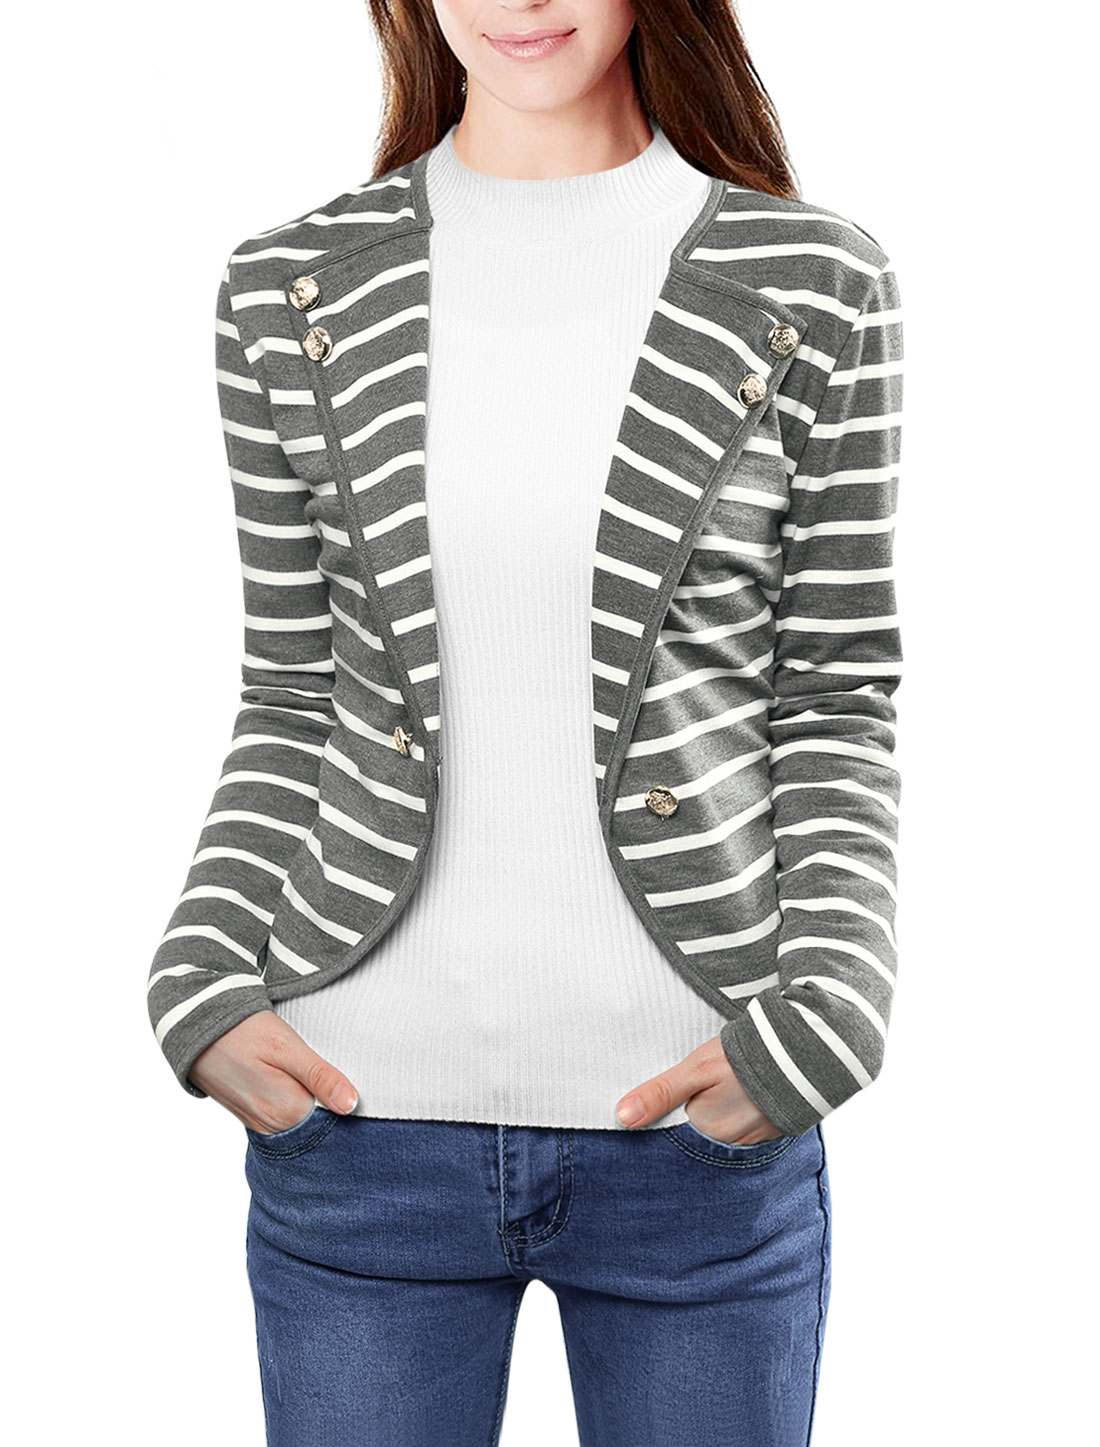 Ladies Notched Lapel Button Decor Striped Blazer Gray White XL